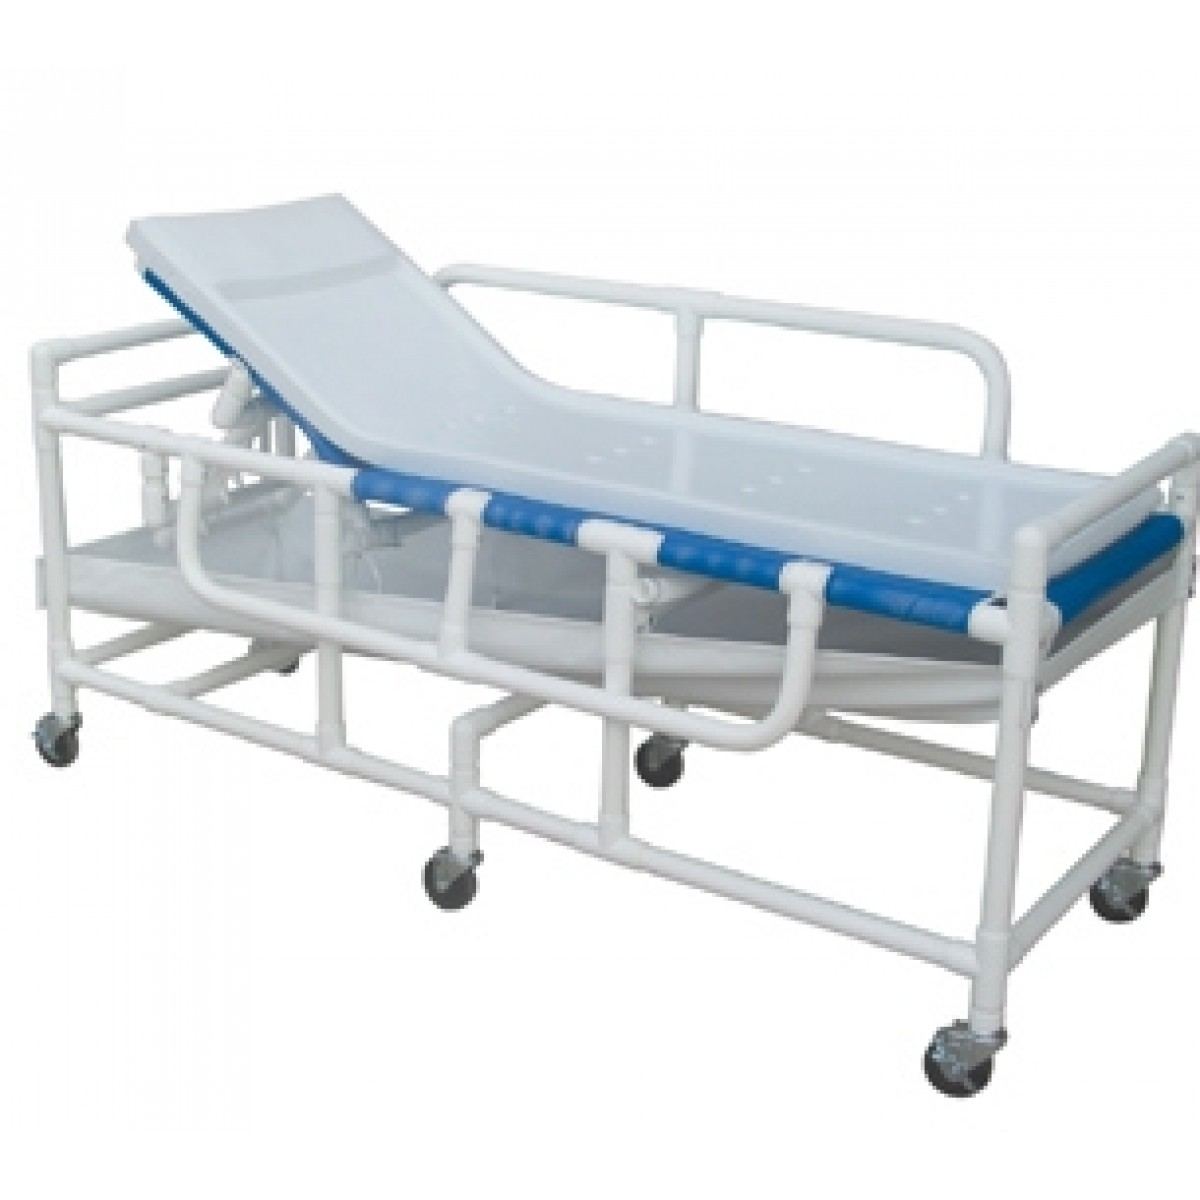 Mobile Shower Bed 79 L X 30 W X 33.5 H Inch - 910